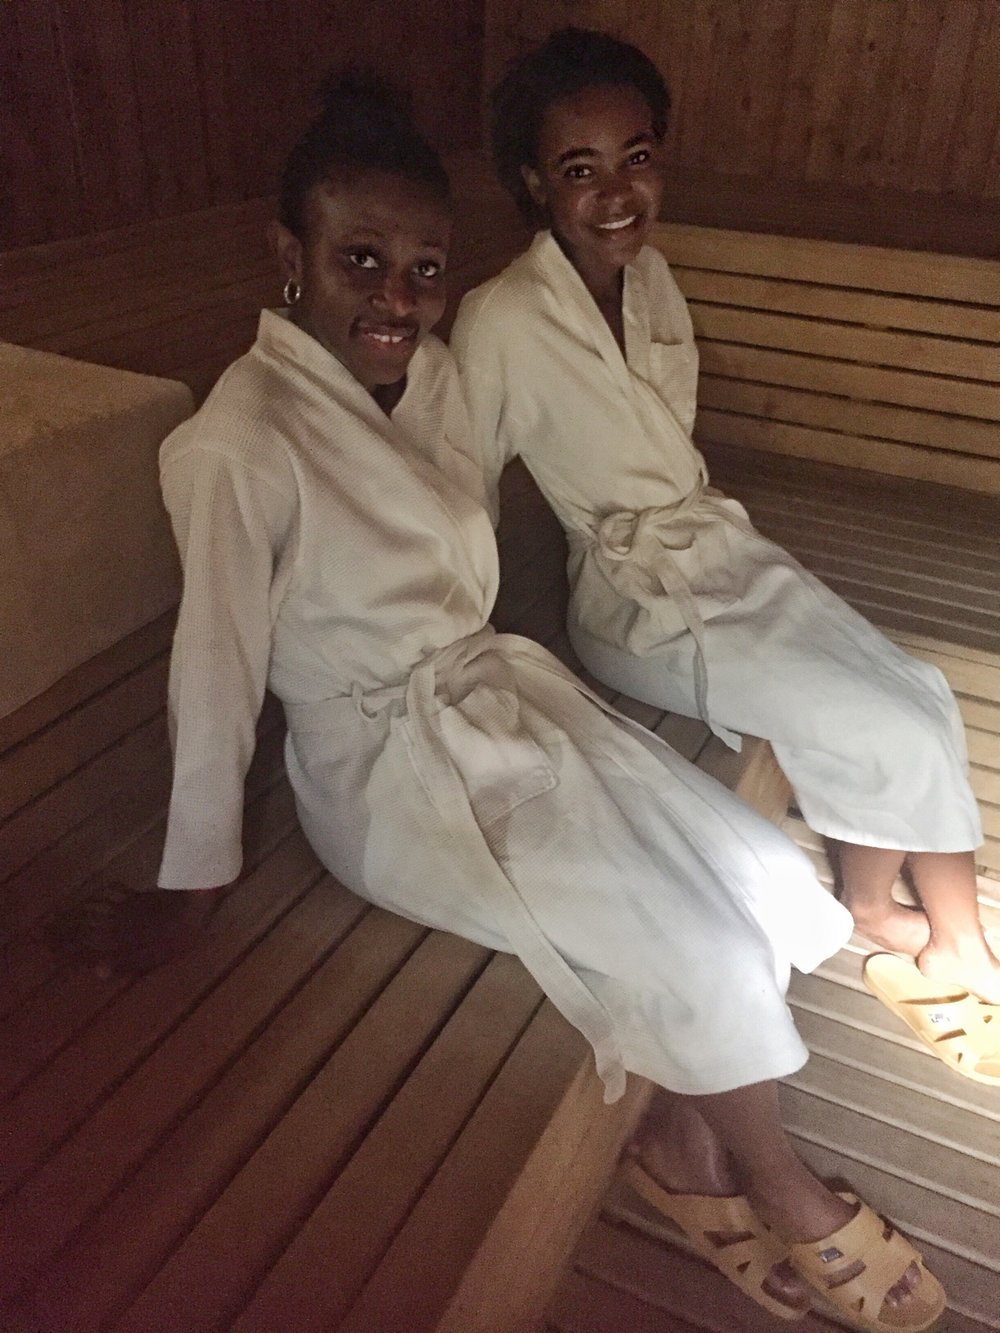 Here we are getting ready to enjoy ourselves in the sauna room.